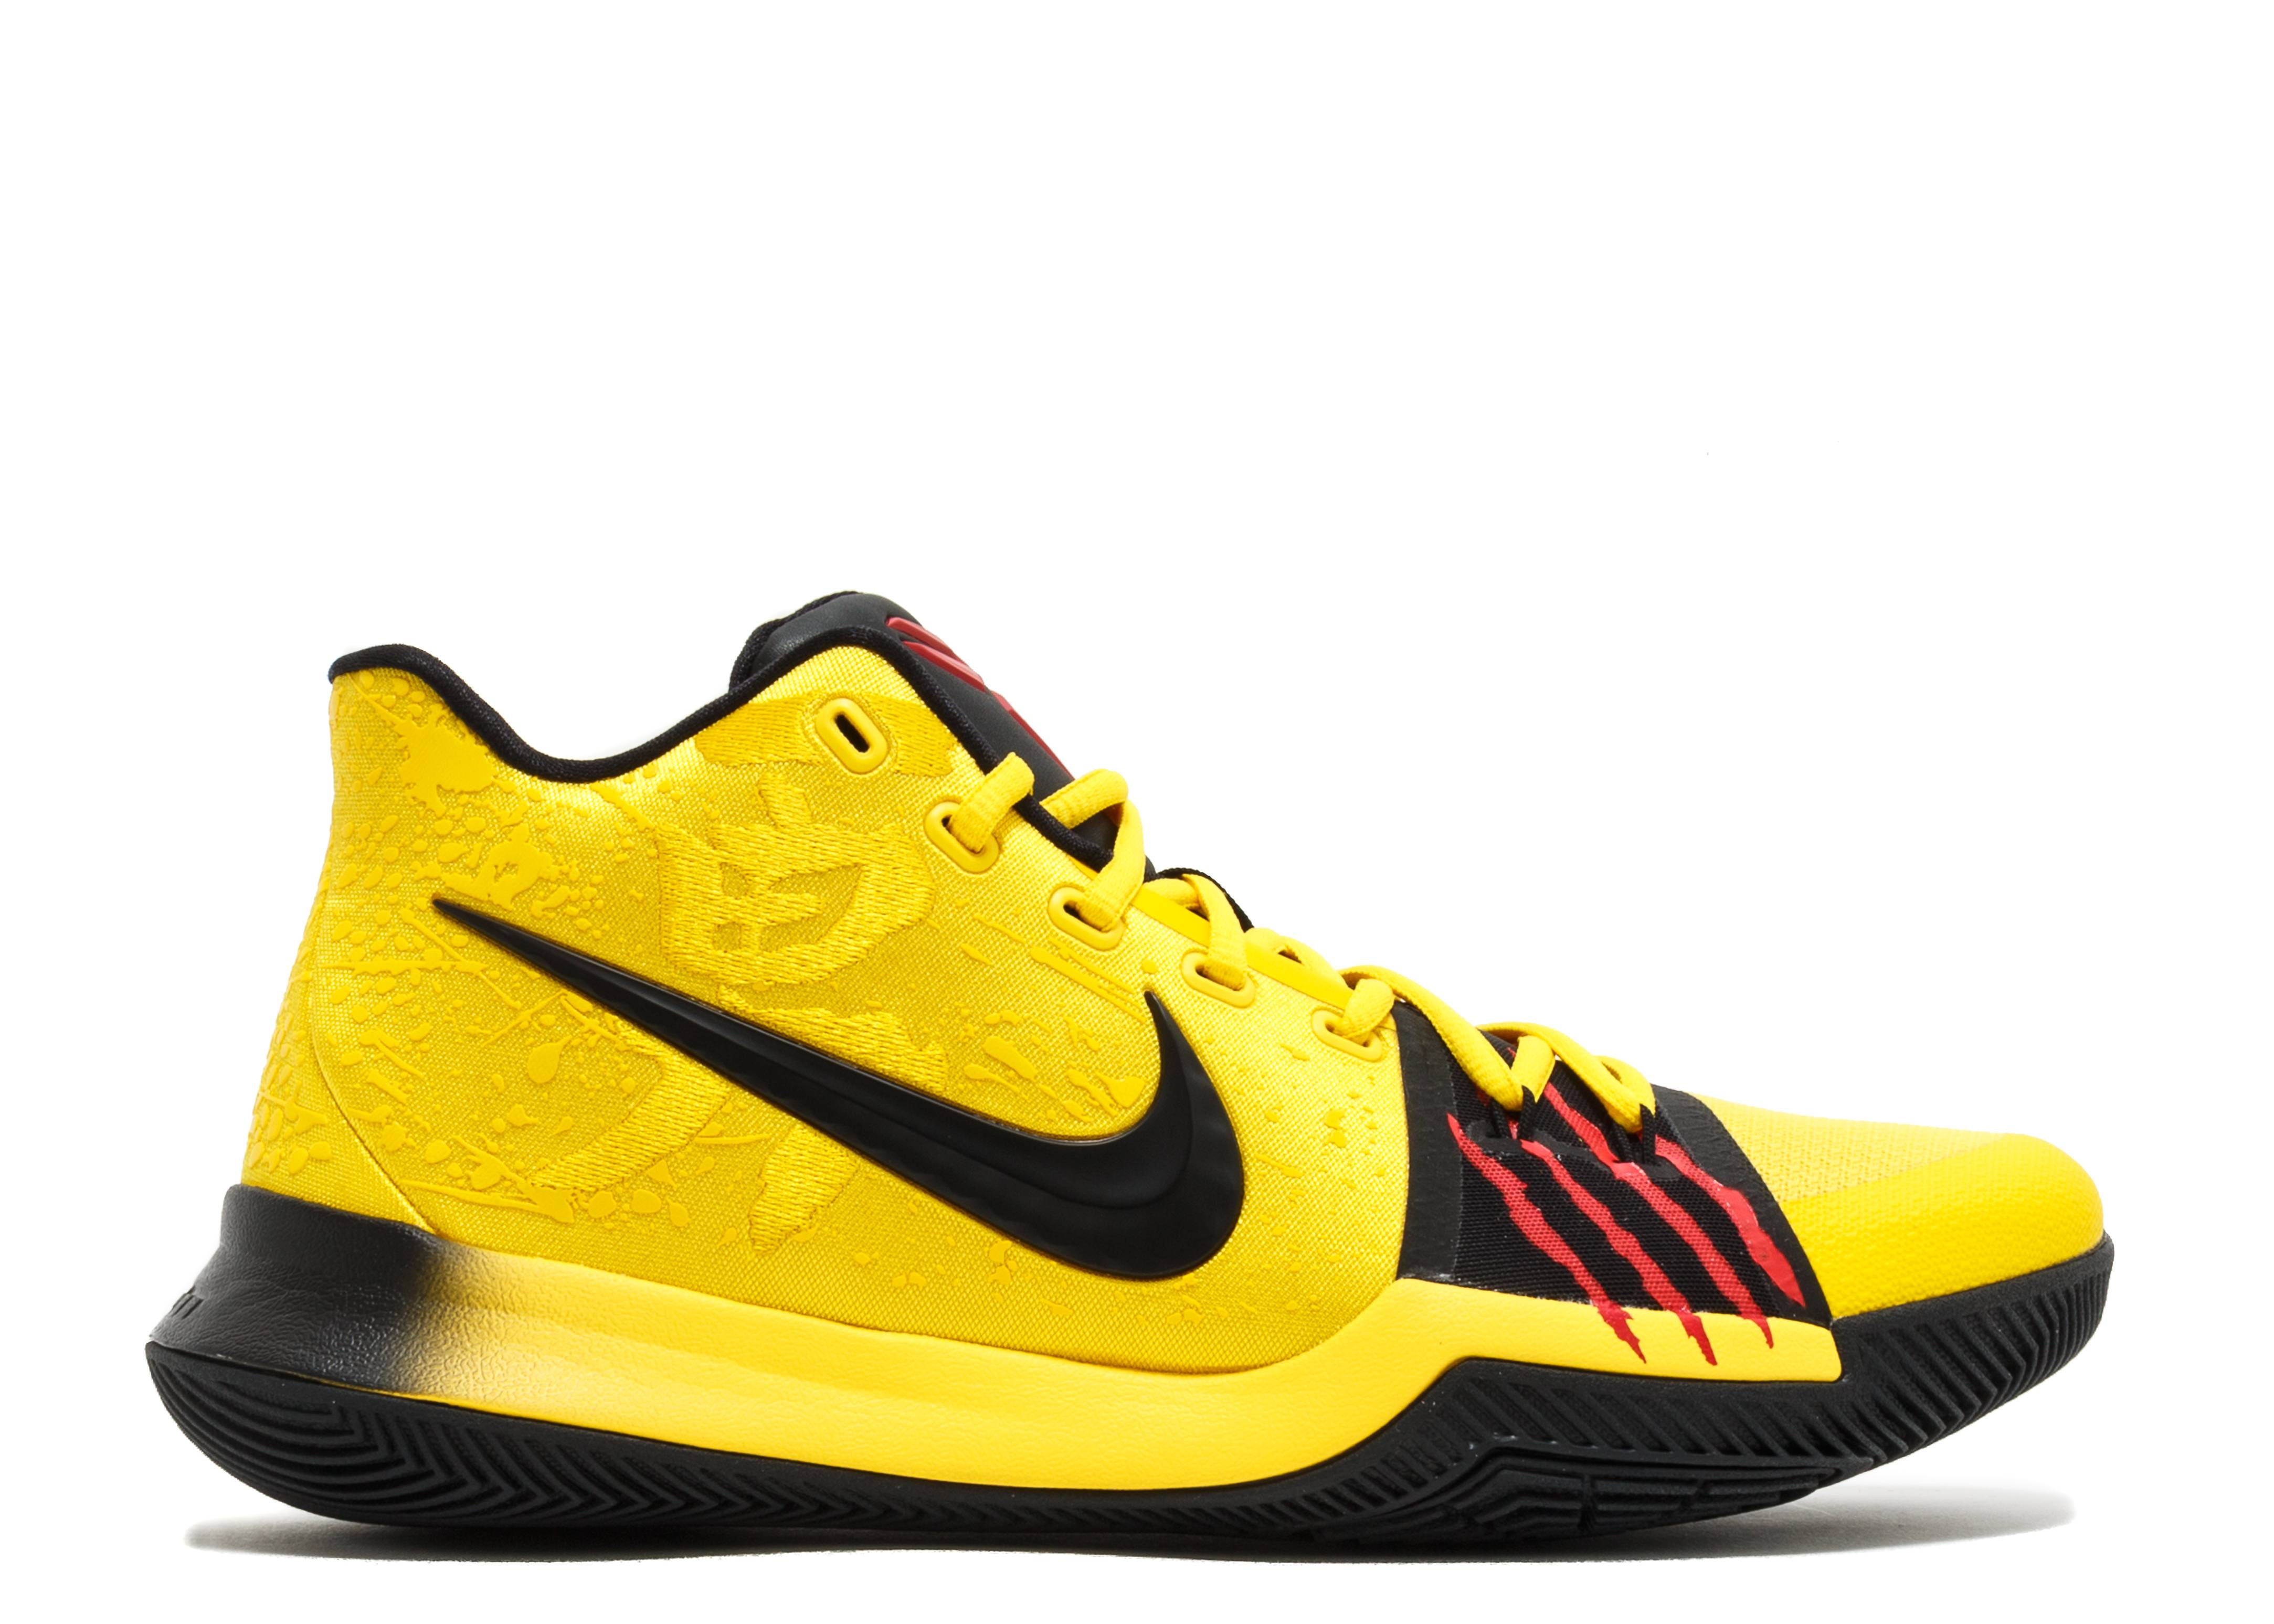 best website 75ce5 b7315 kyrie 3 shoes price